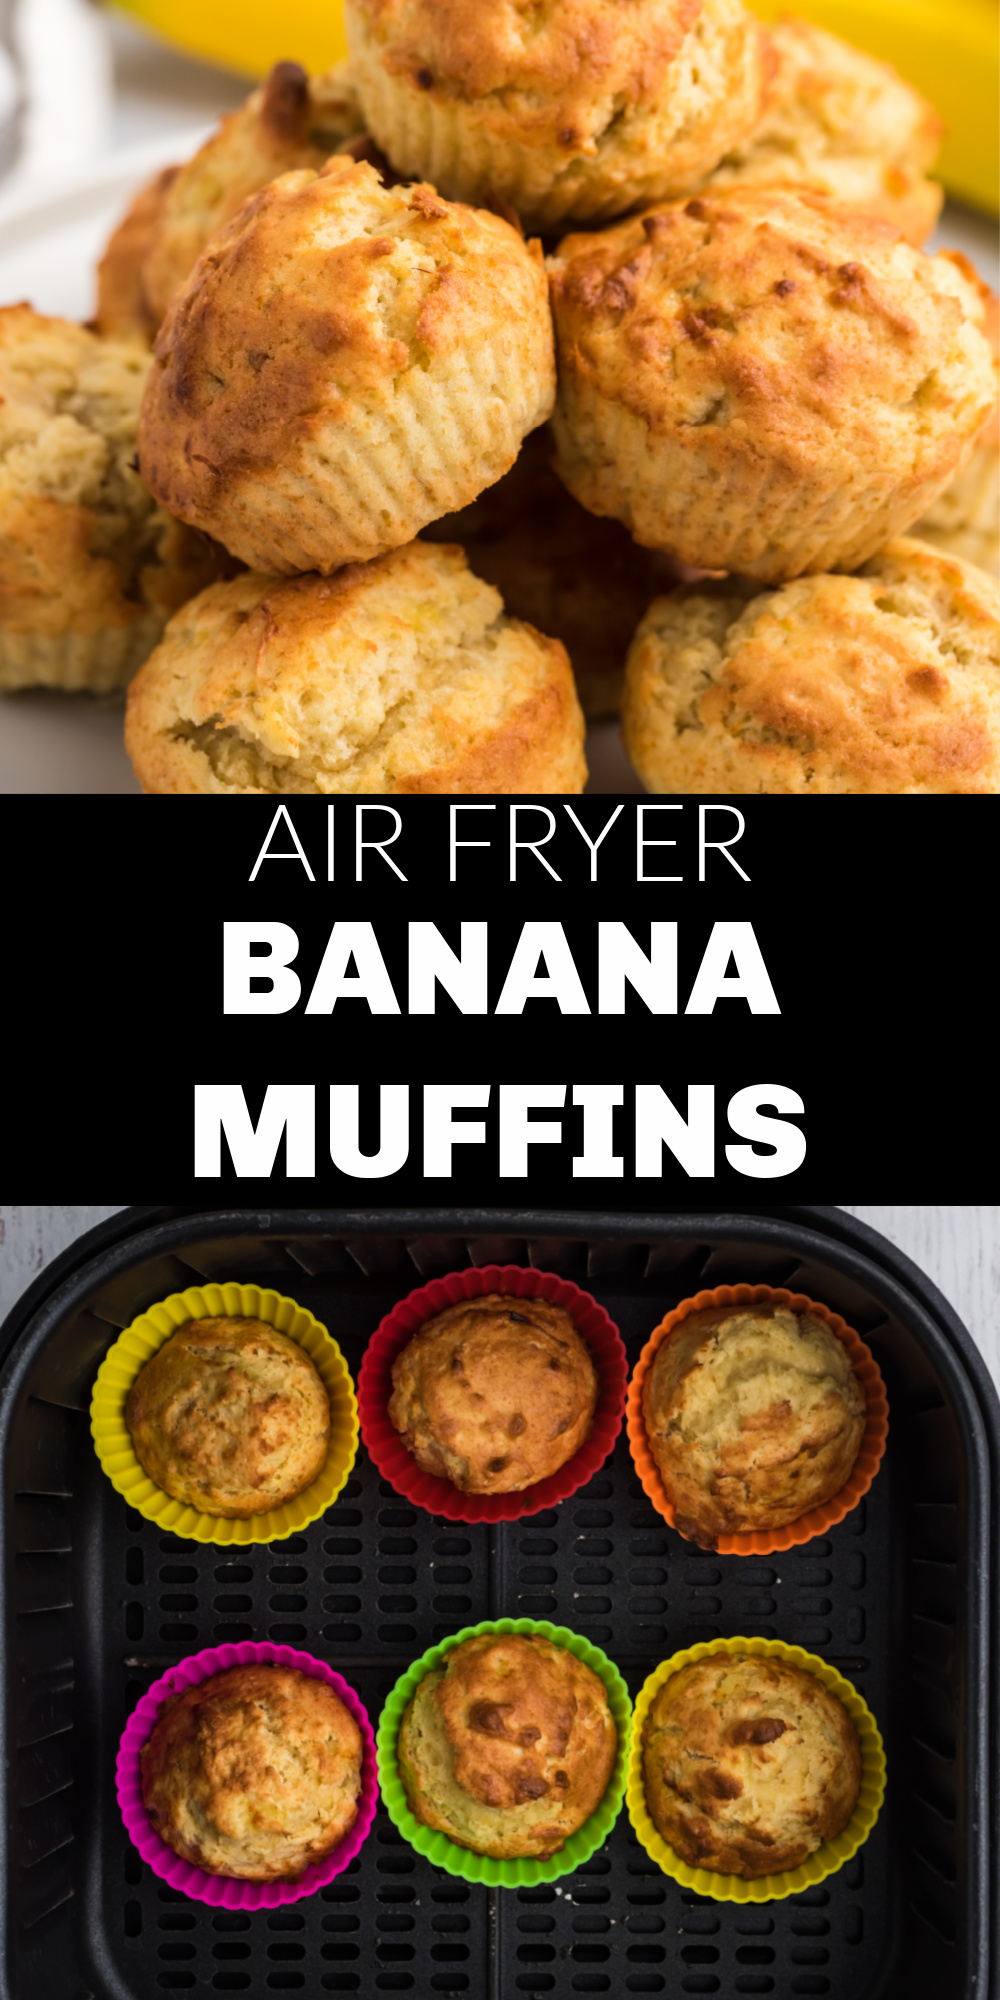 These Air Fryer Banana Muffins make a great breakfast or dessert. Use up those ripe bananas and make this quick and easy recipe in less than 15 minutes with the air fryer.